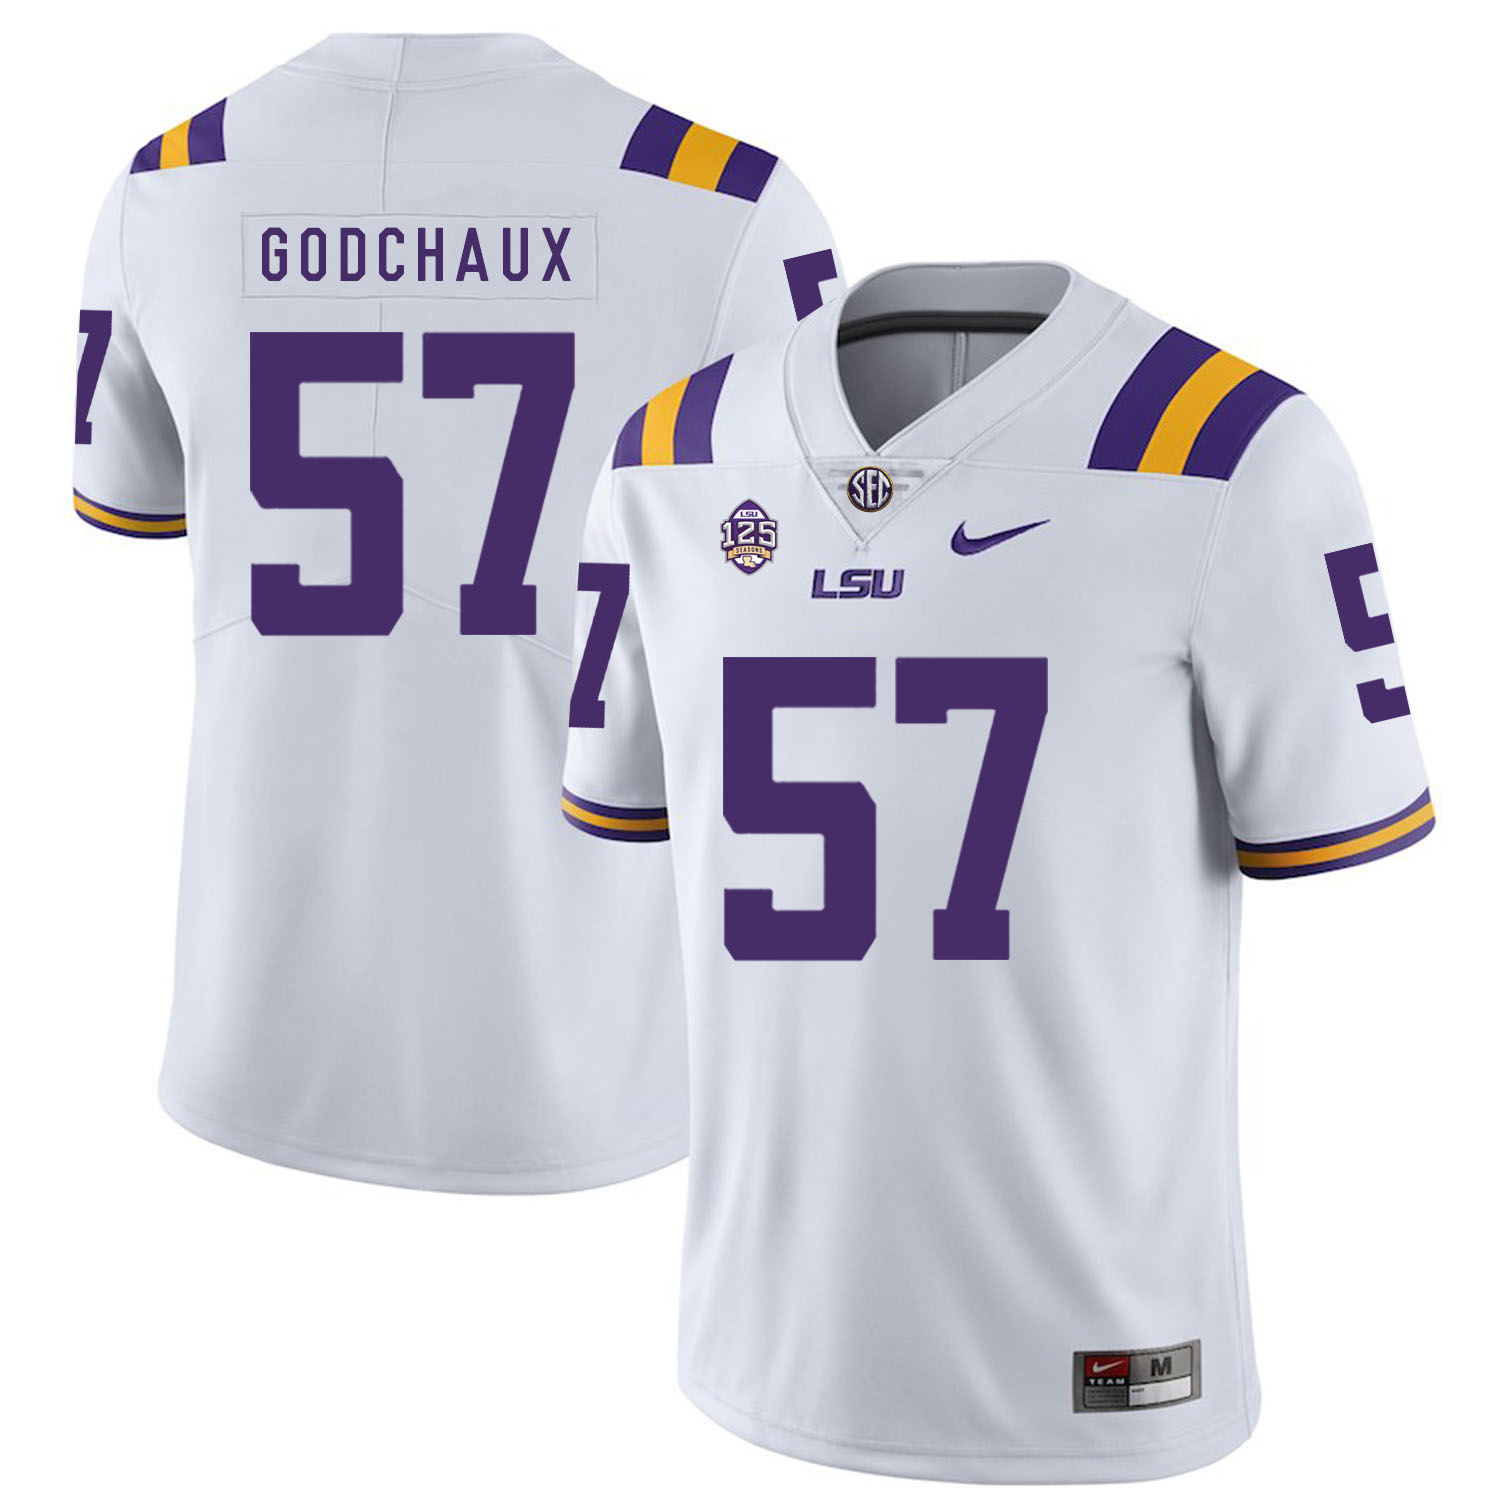 LSU Tigers 57 Davon Godchaux White Nike College Football Jersey